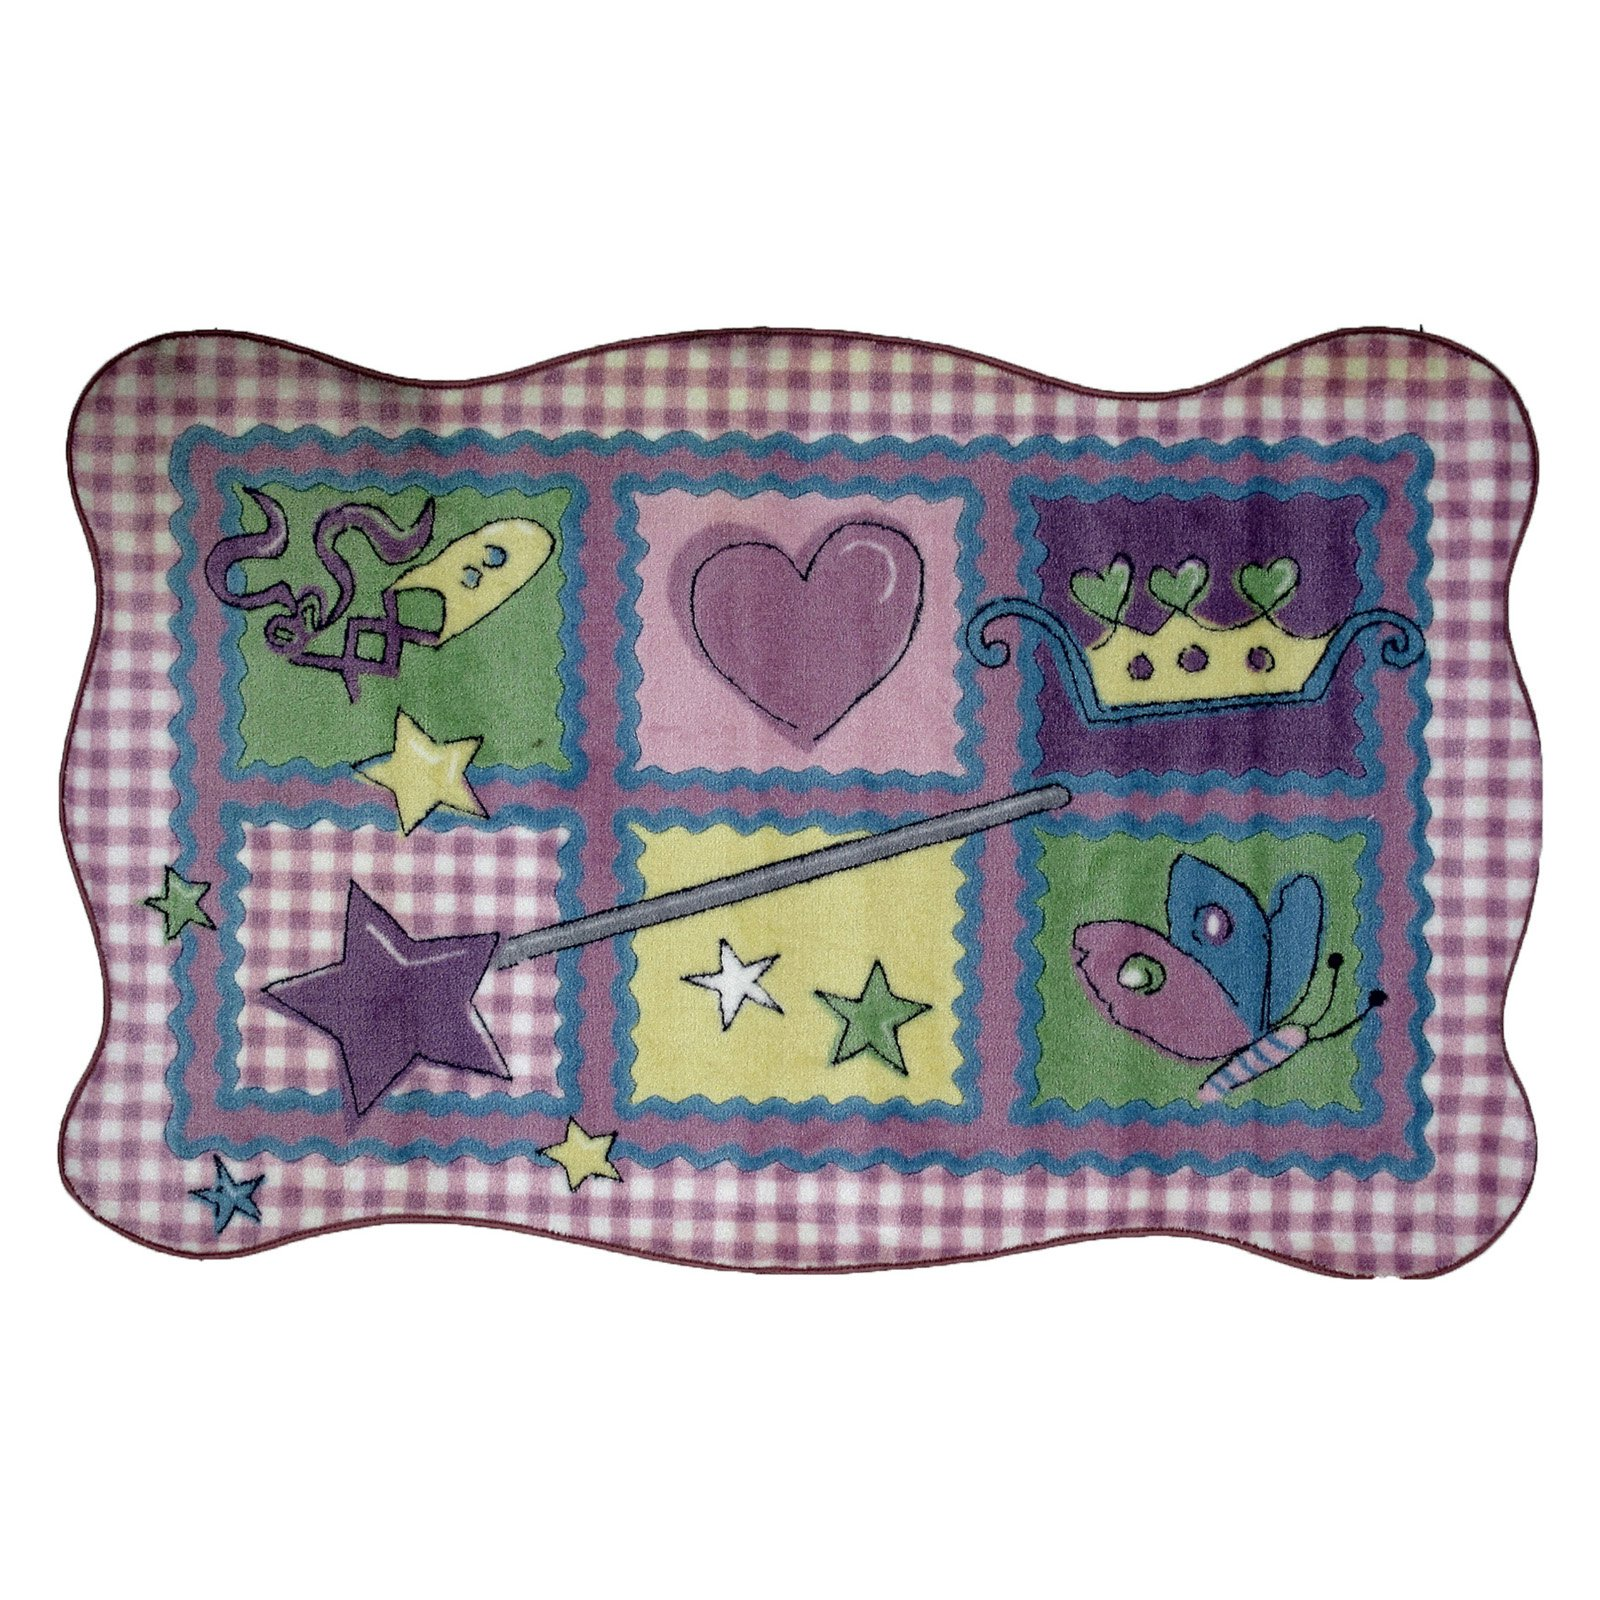 Fun Rugs Supreme TSC-220 Fairy Quilt Area Rug Multicolor by LA Rug Inc